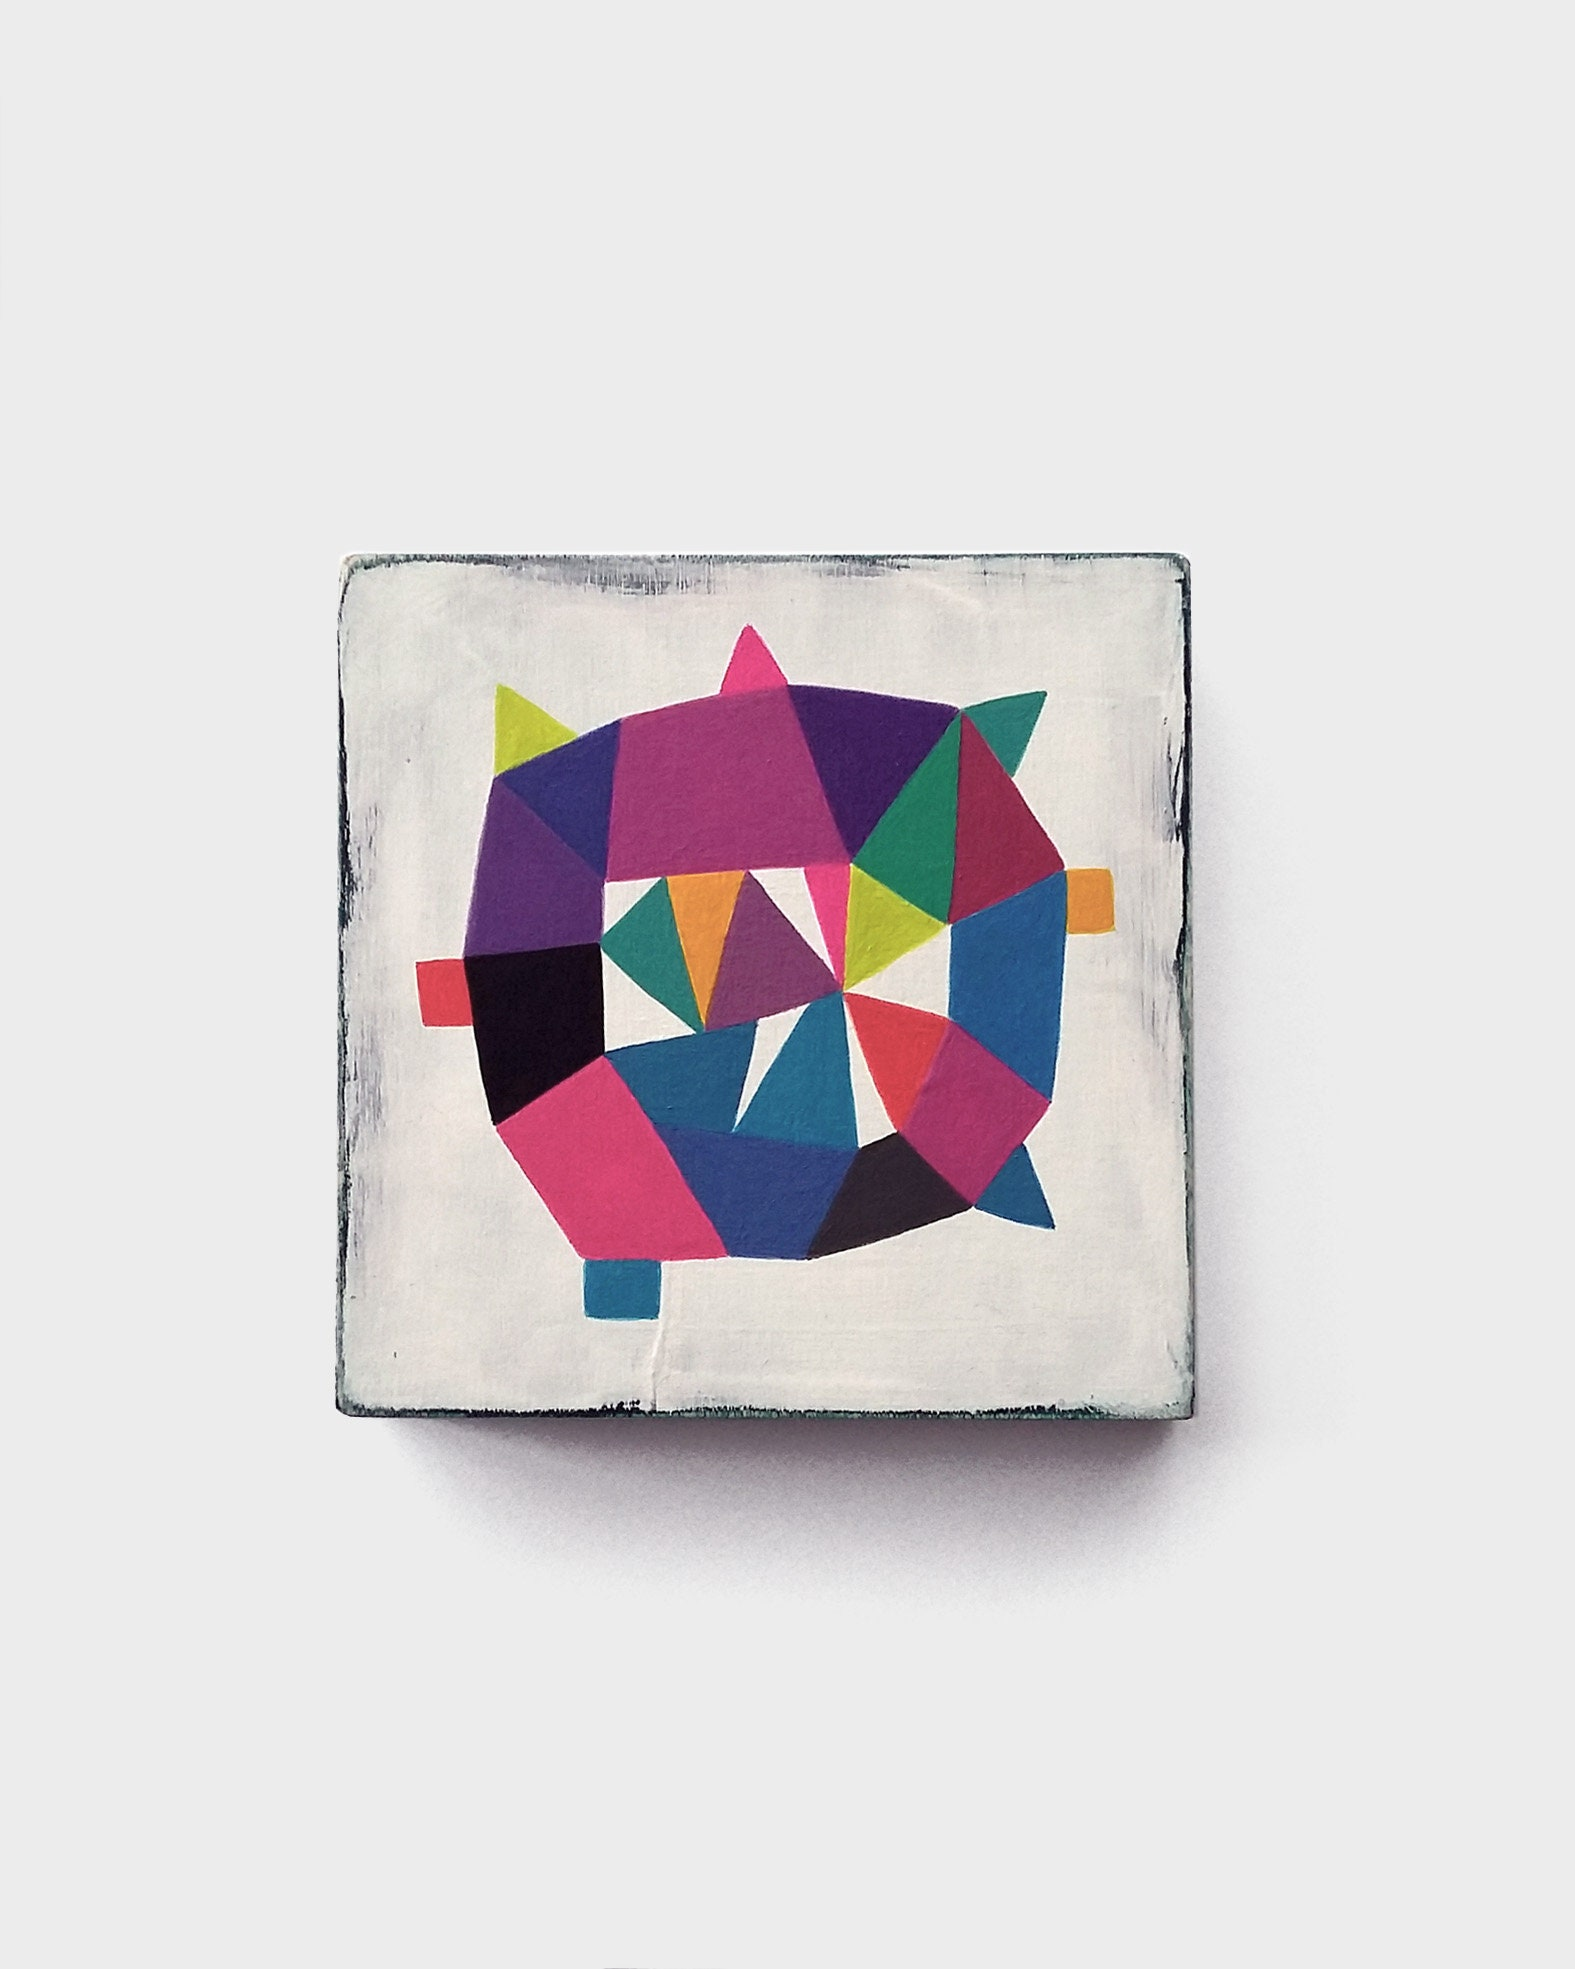 Star_005, colourful abstract painting on wood - product images  of